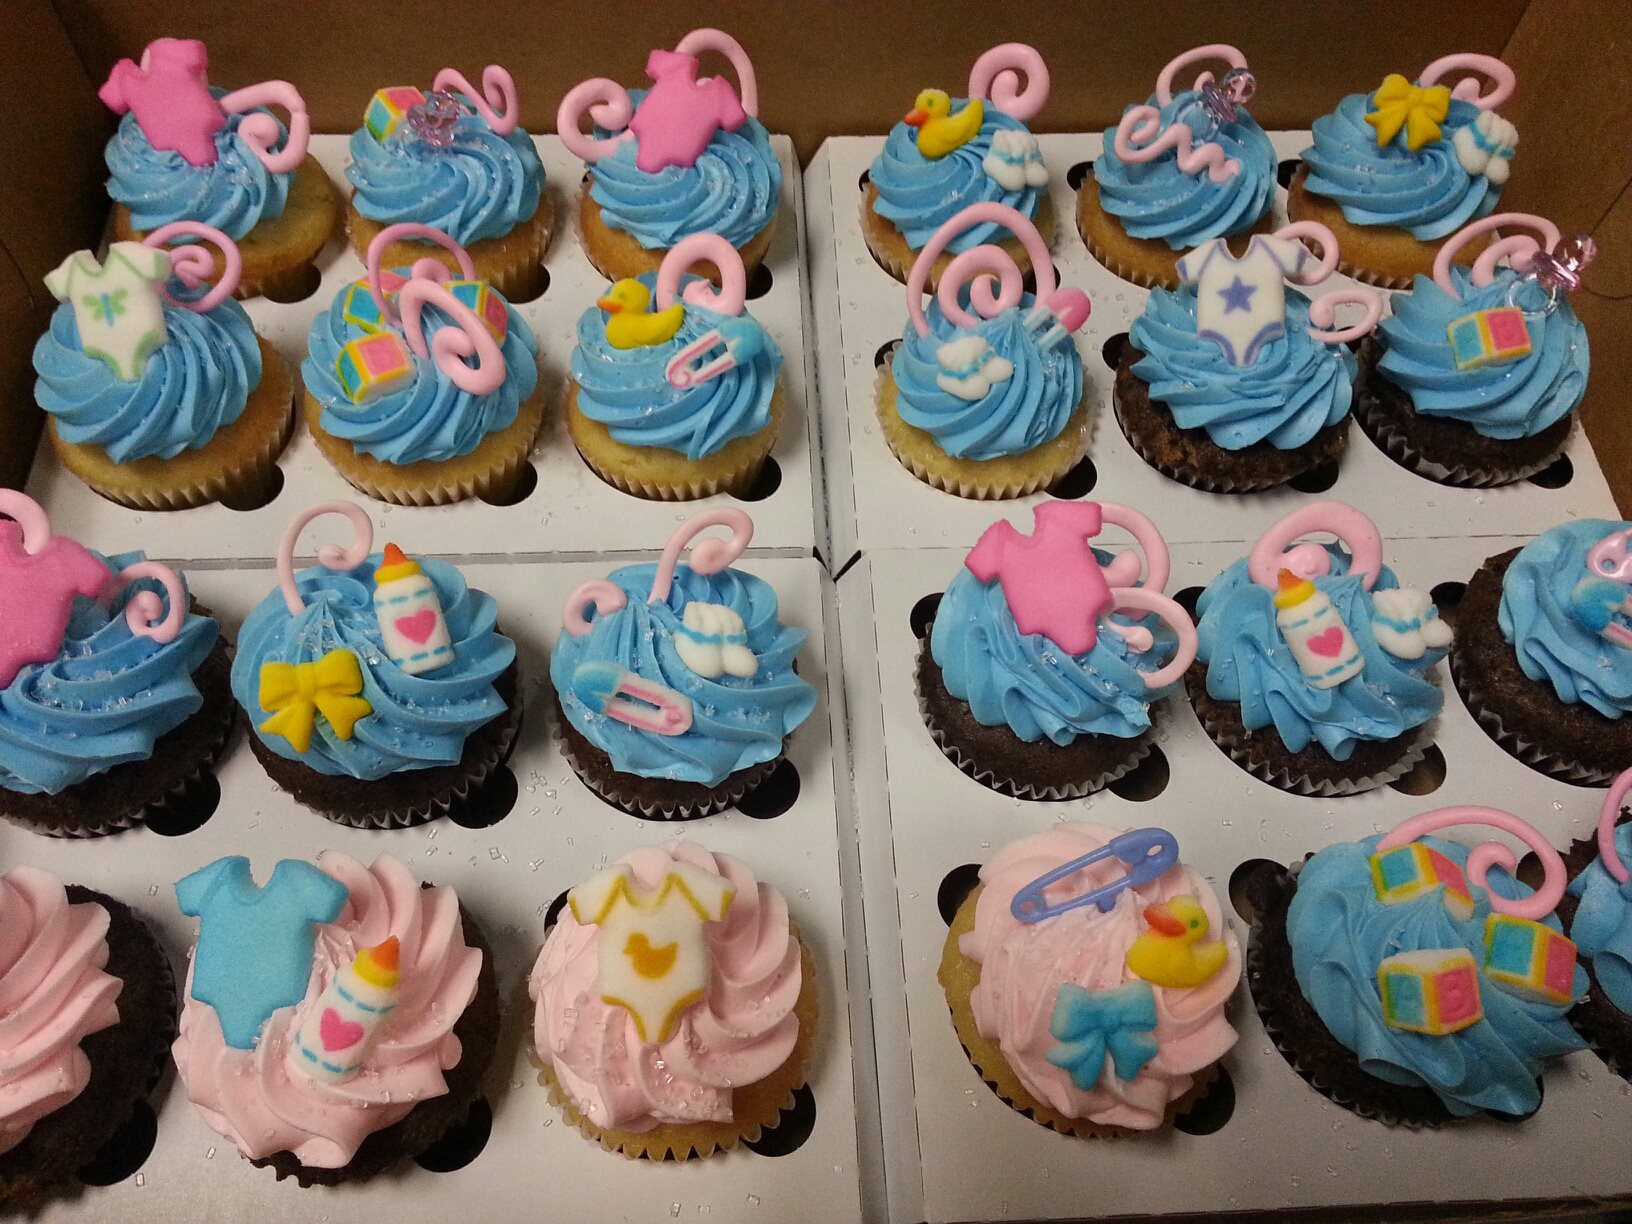 Baby Blues and Pinks Cupcakes